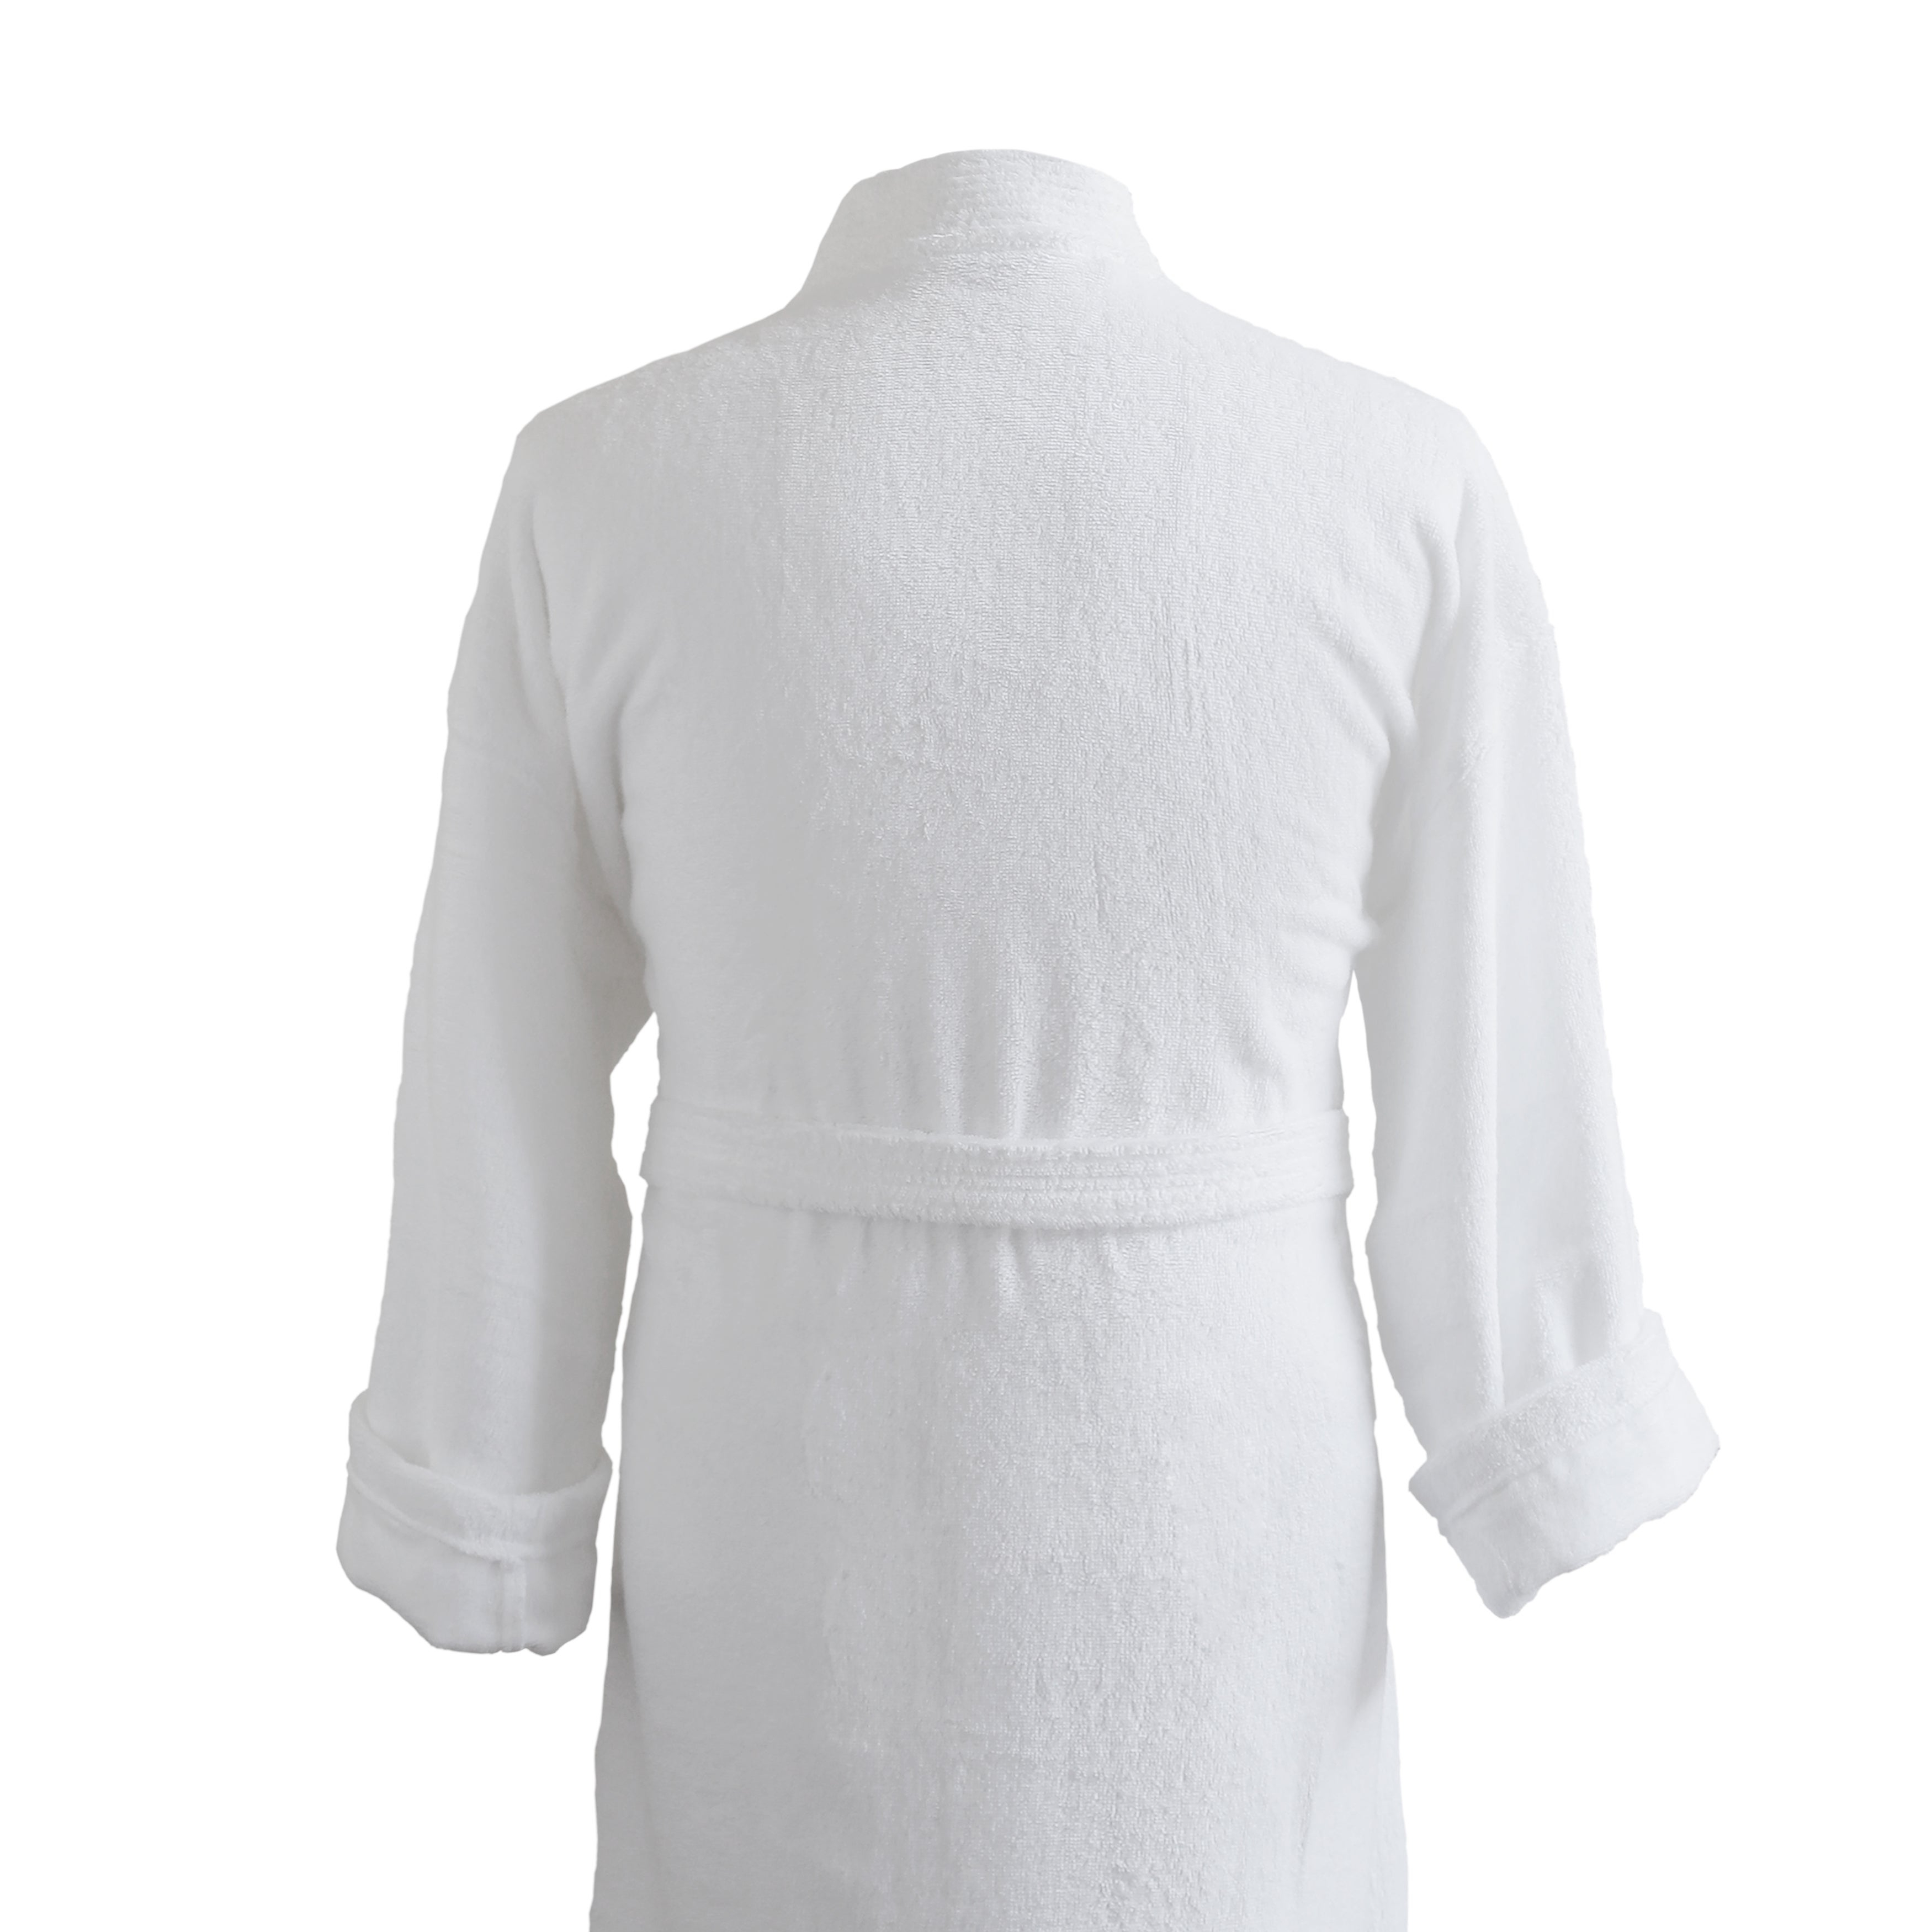 0a685d0d87 Shop Wyndham Egyptian Cotton His and Hers Terry Spa Robe Set (Gift Packaging)  - Free Shipping Today - Overstock - 10631383